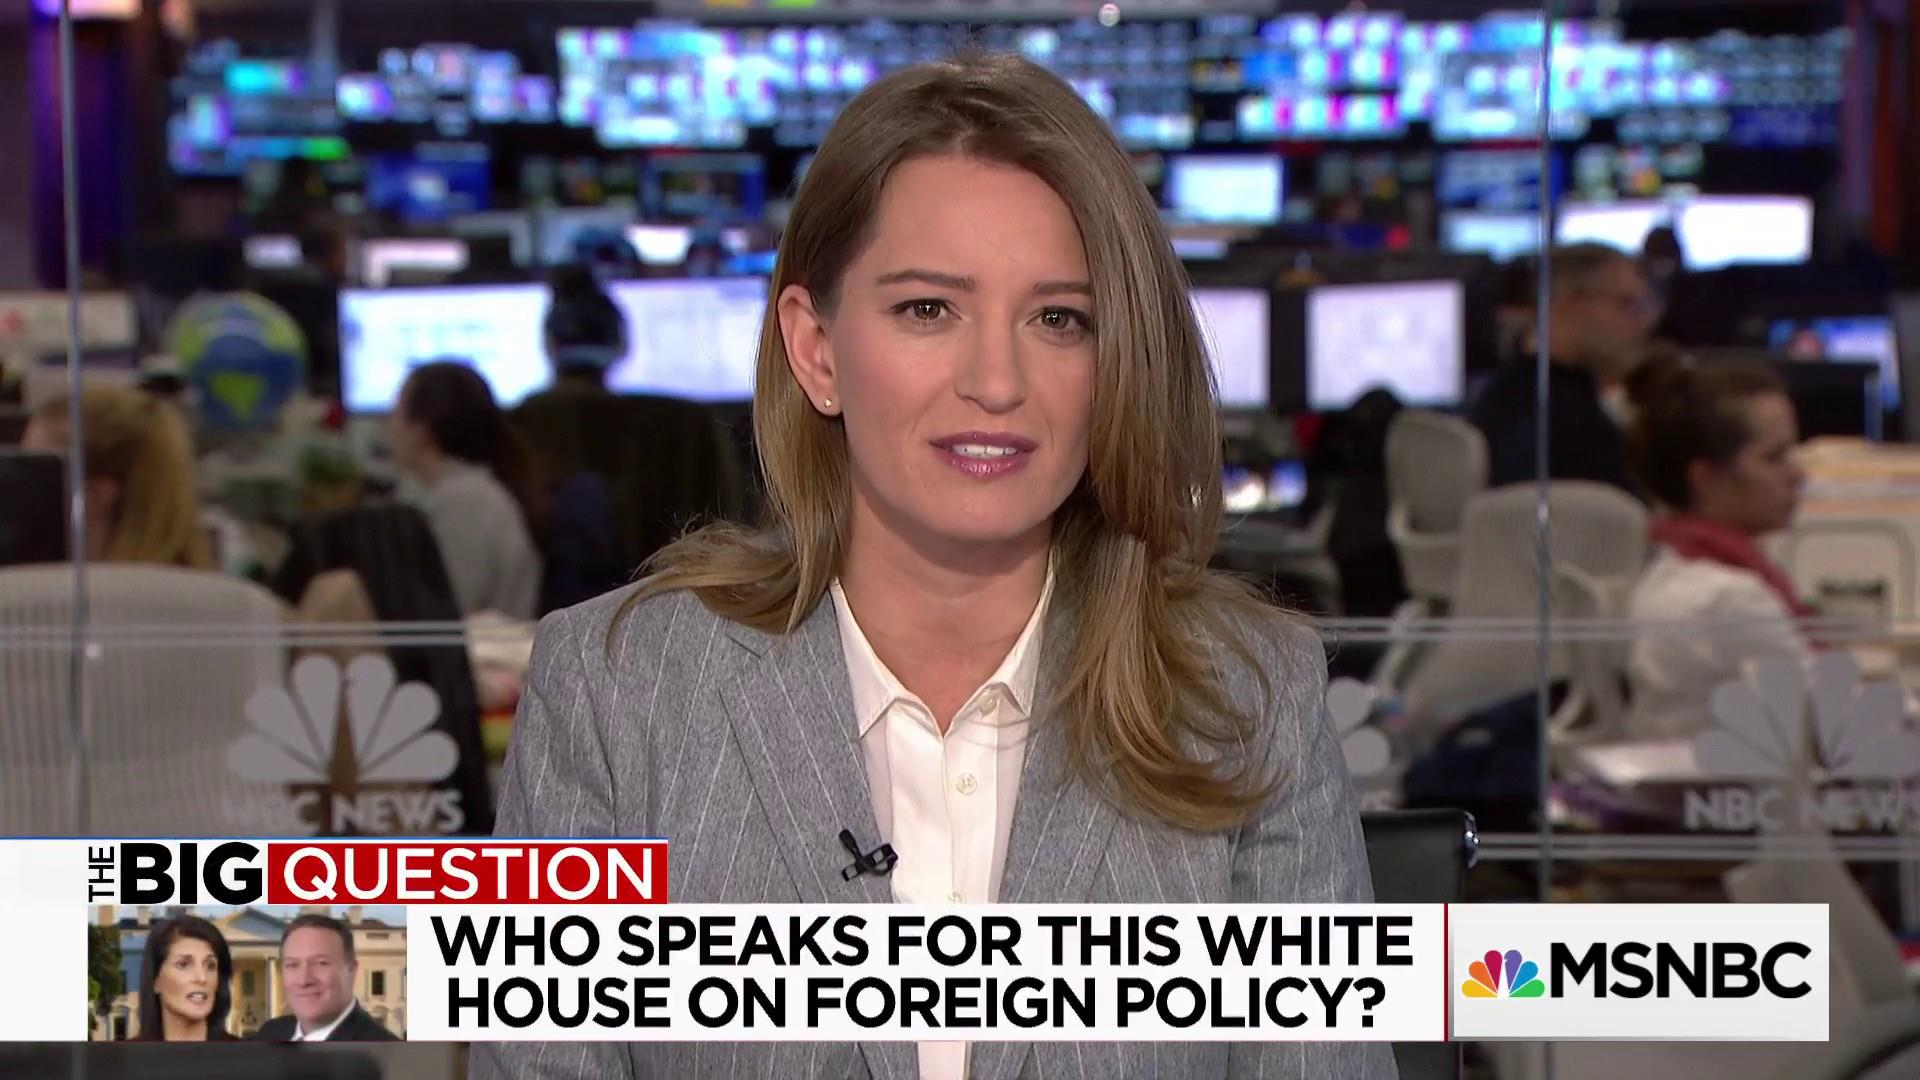 The Big Question: Who speaks for the White House on foreign policy?